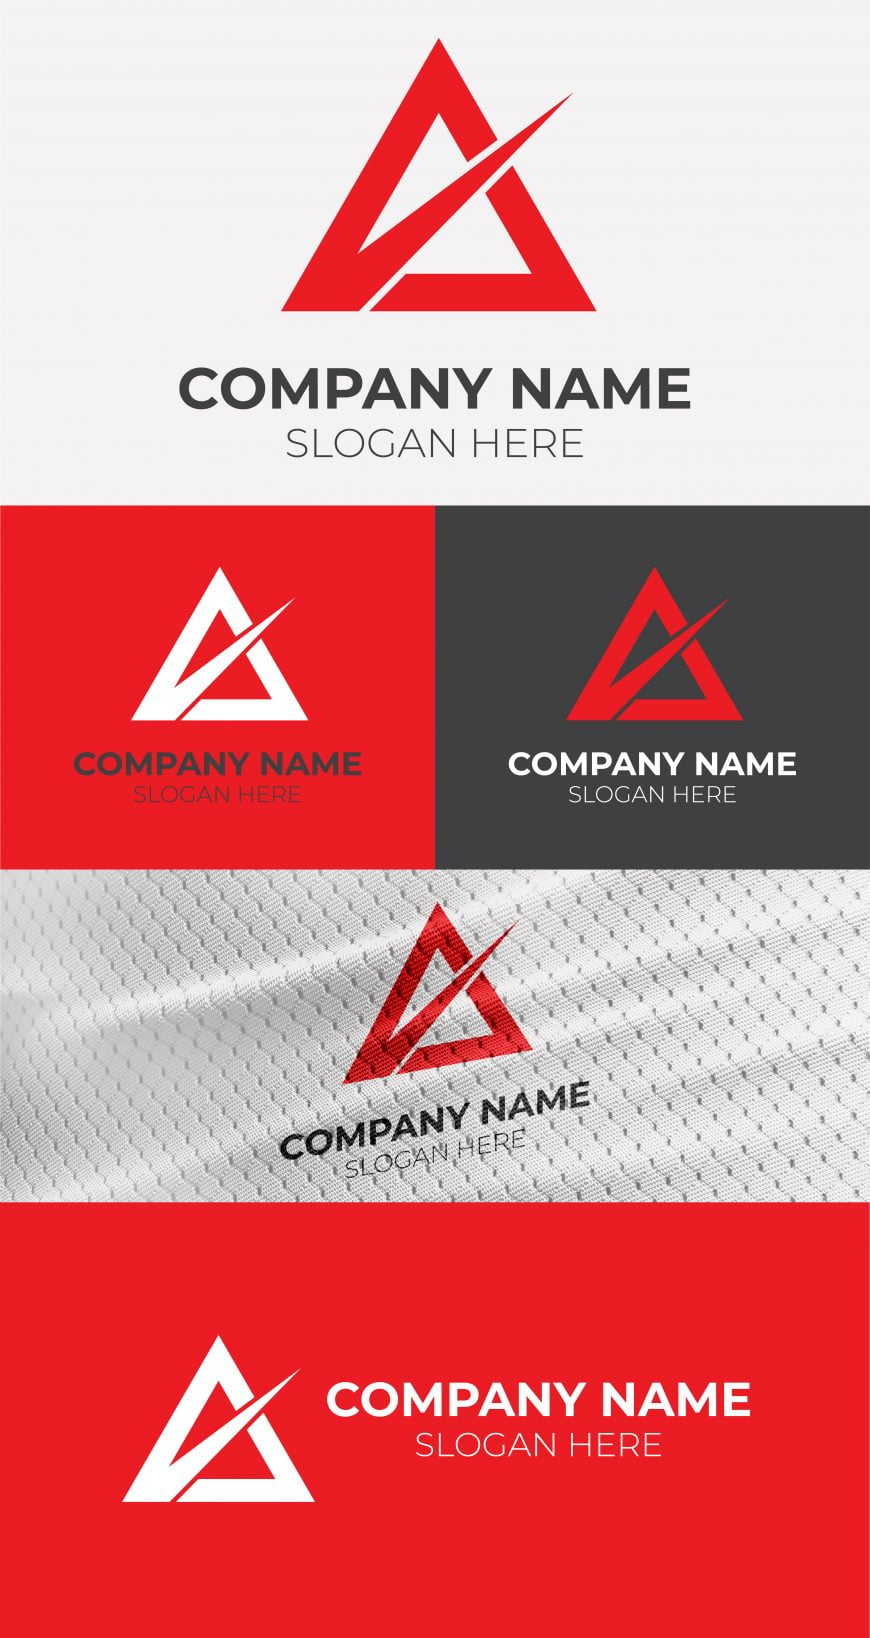 A-LETTER-FREE-VECTOR-TEMPLATE-1-scaled